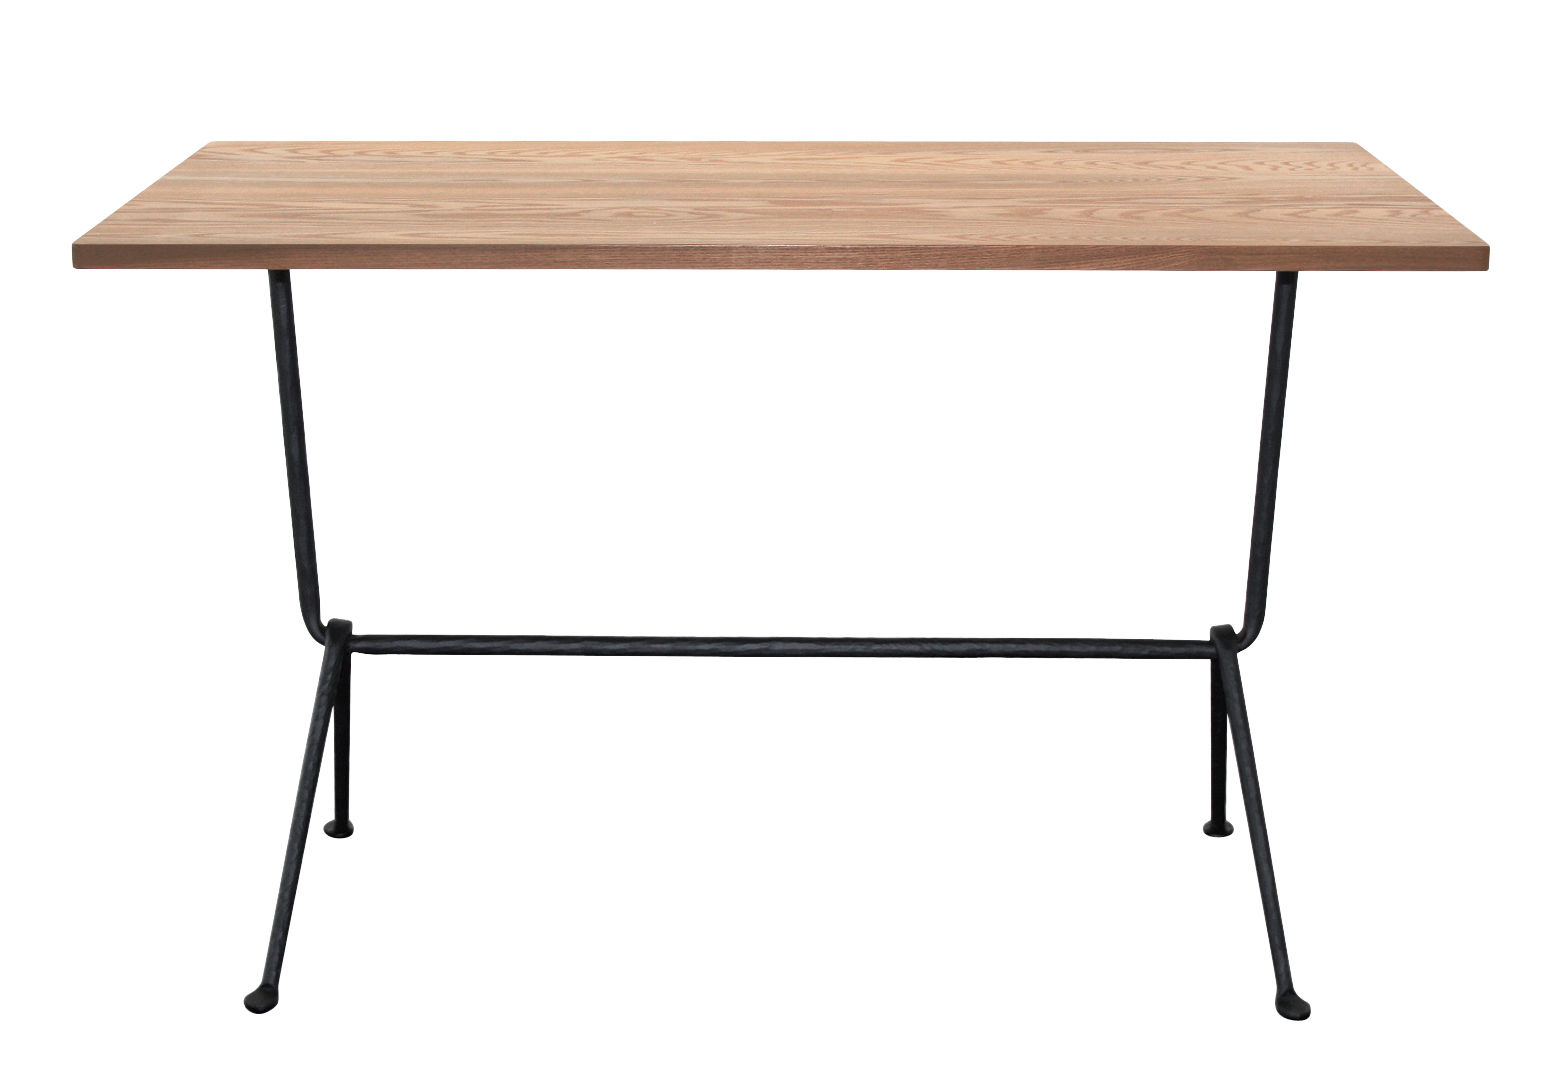 Officina bistrot outdoor table 120 x 60 cm wood ash - Table largeur 60 cm ...